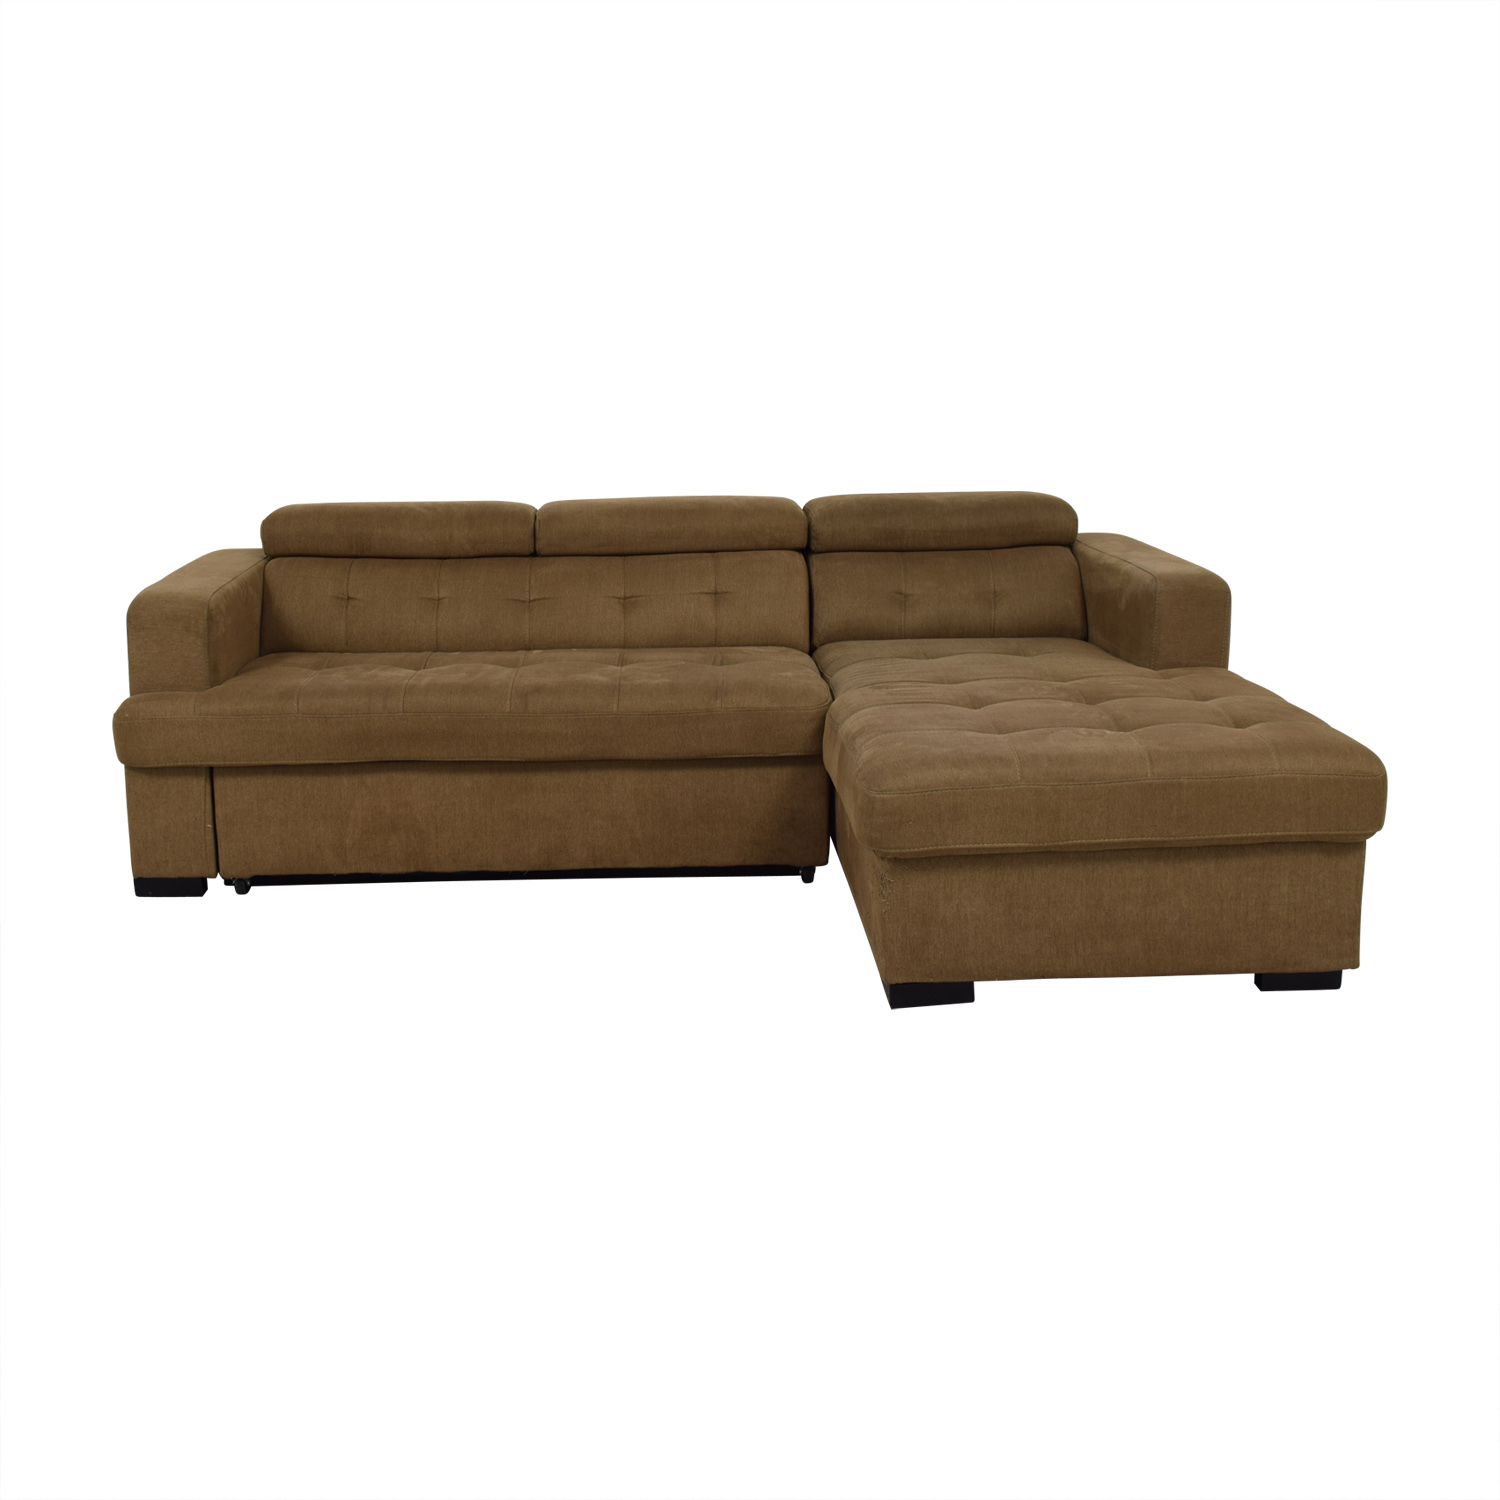 Bob's Furniture Bob's Furniture Brown Sectional with Chaise Storage Brown